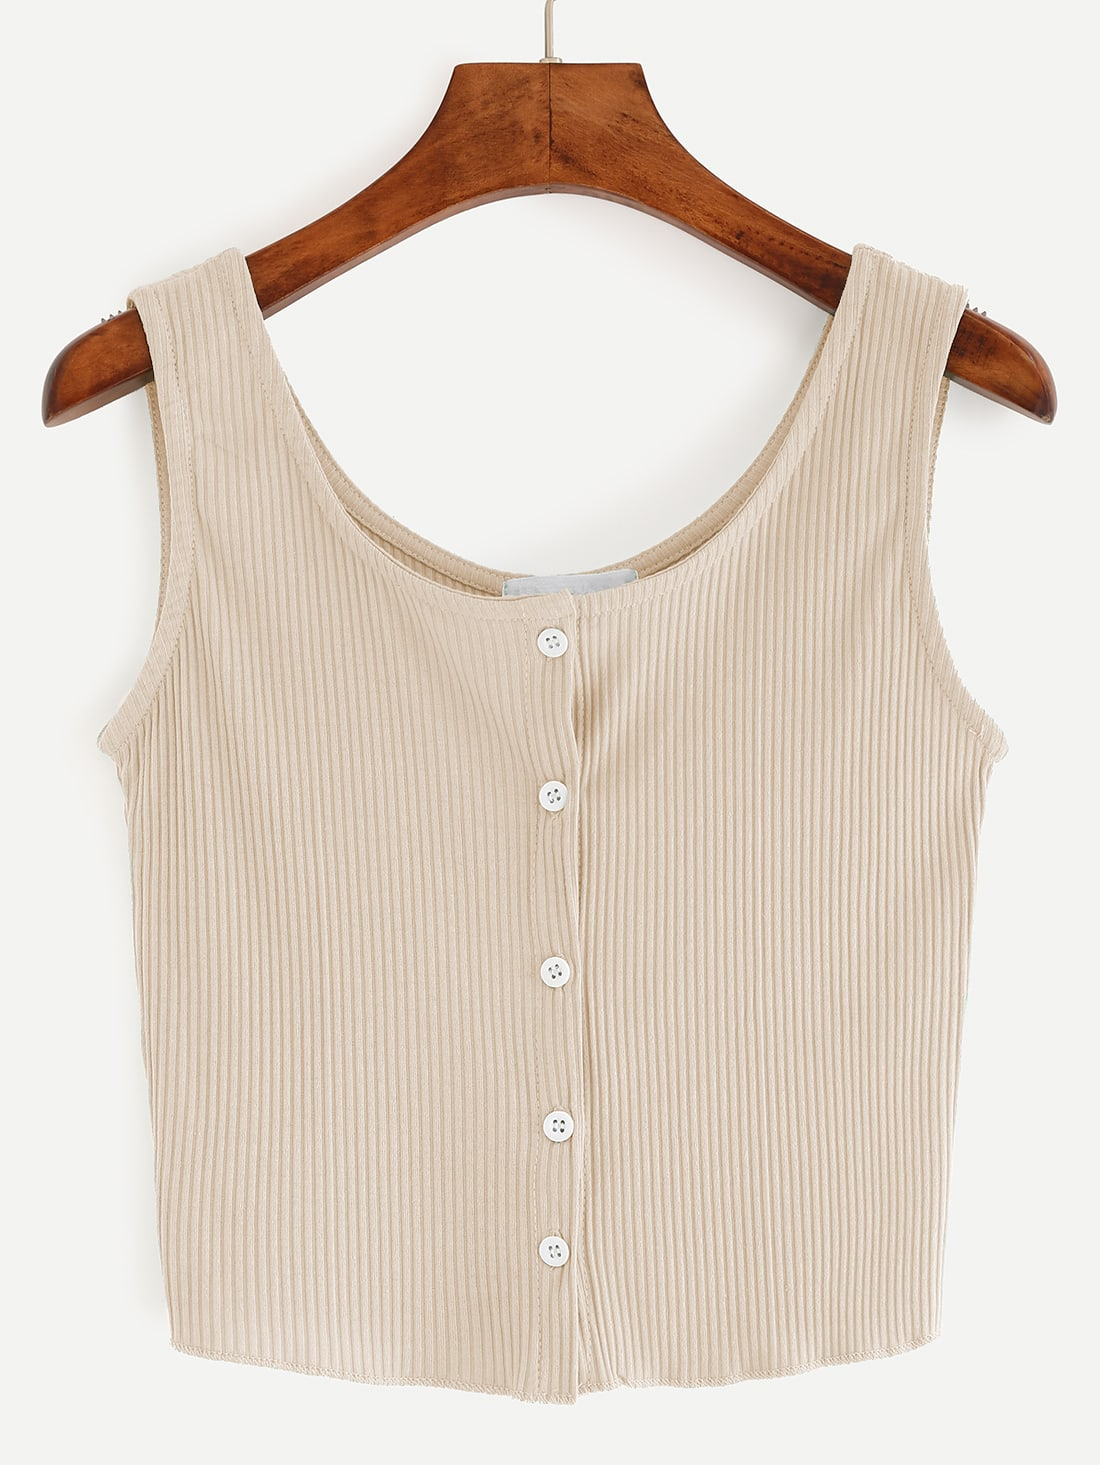 Beige Button Front Ribbed Tank Top vest160705027